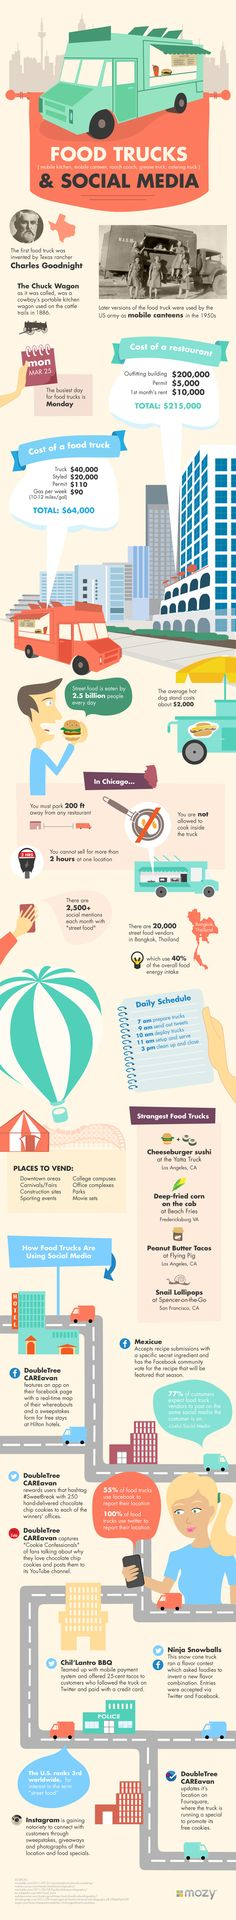 Fun facts about food trucks that I NEVER would have known!                                                                                                                                                                                 More